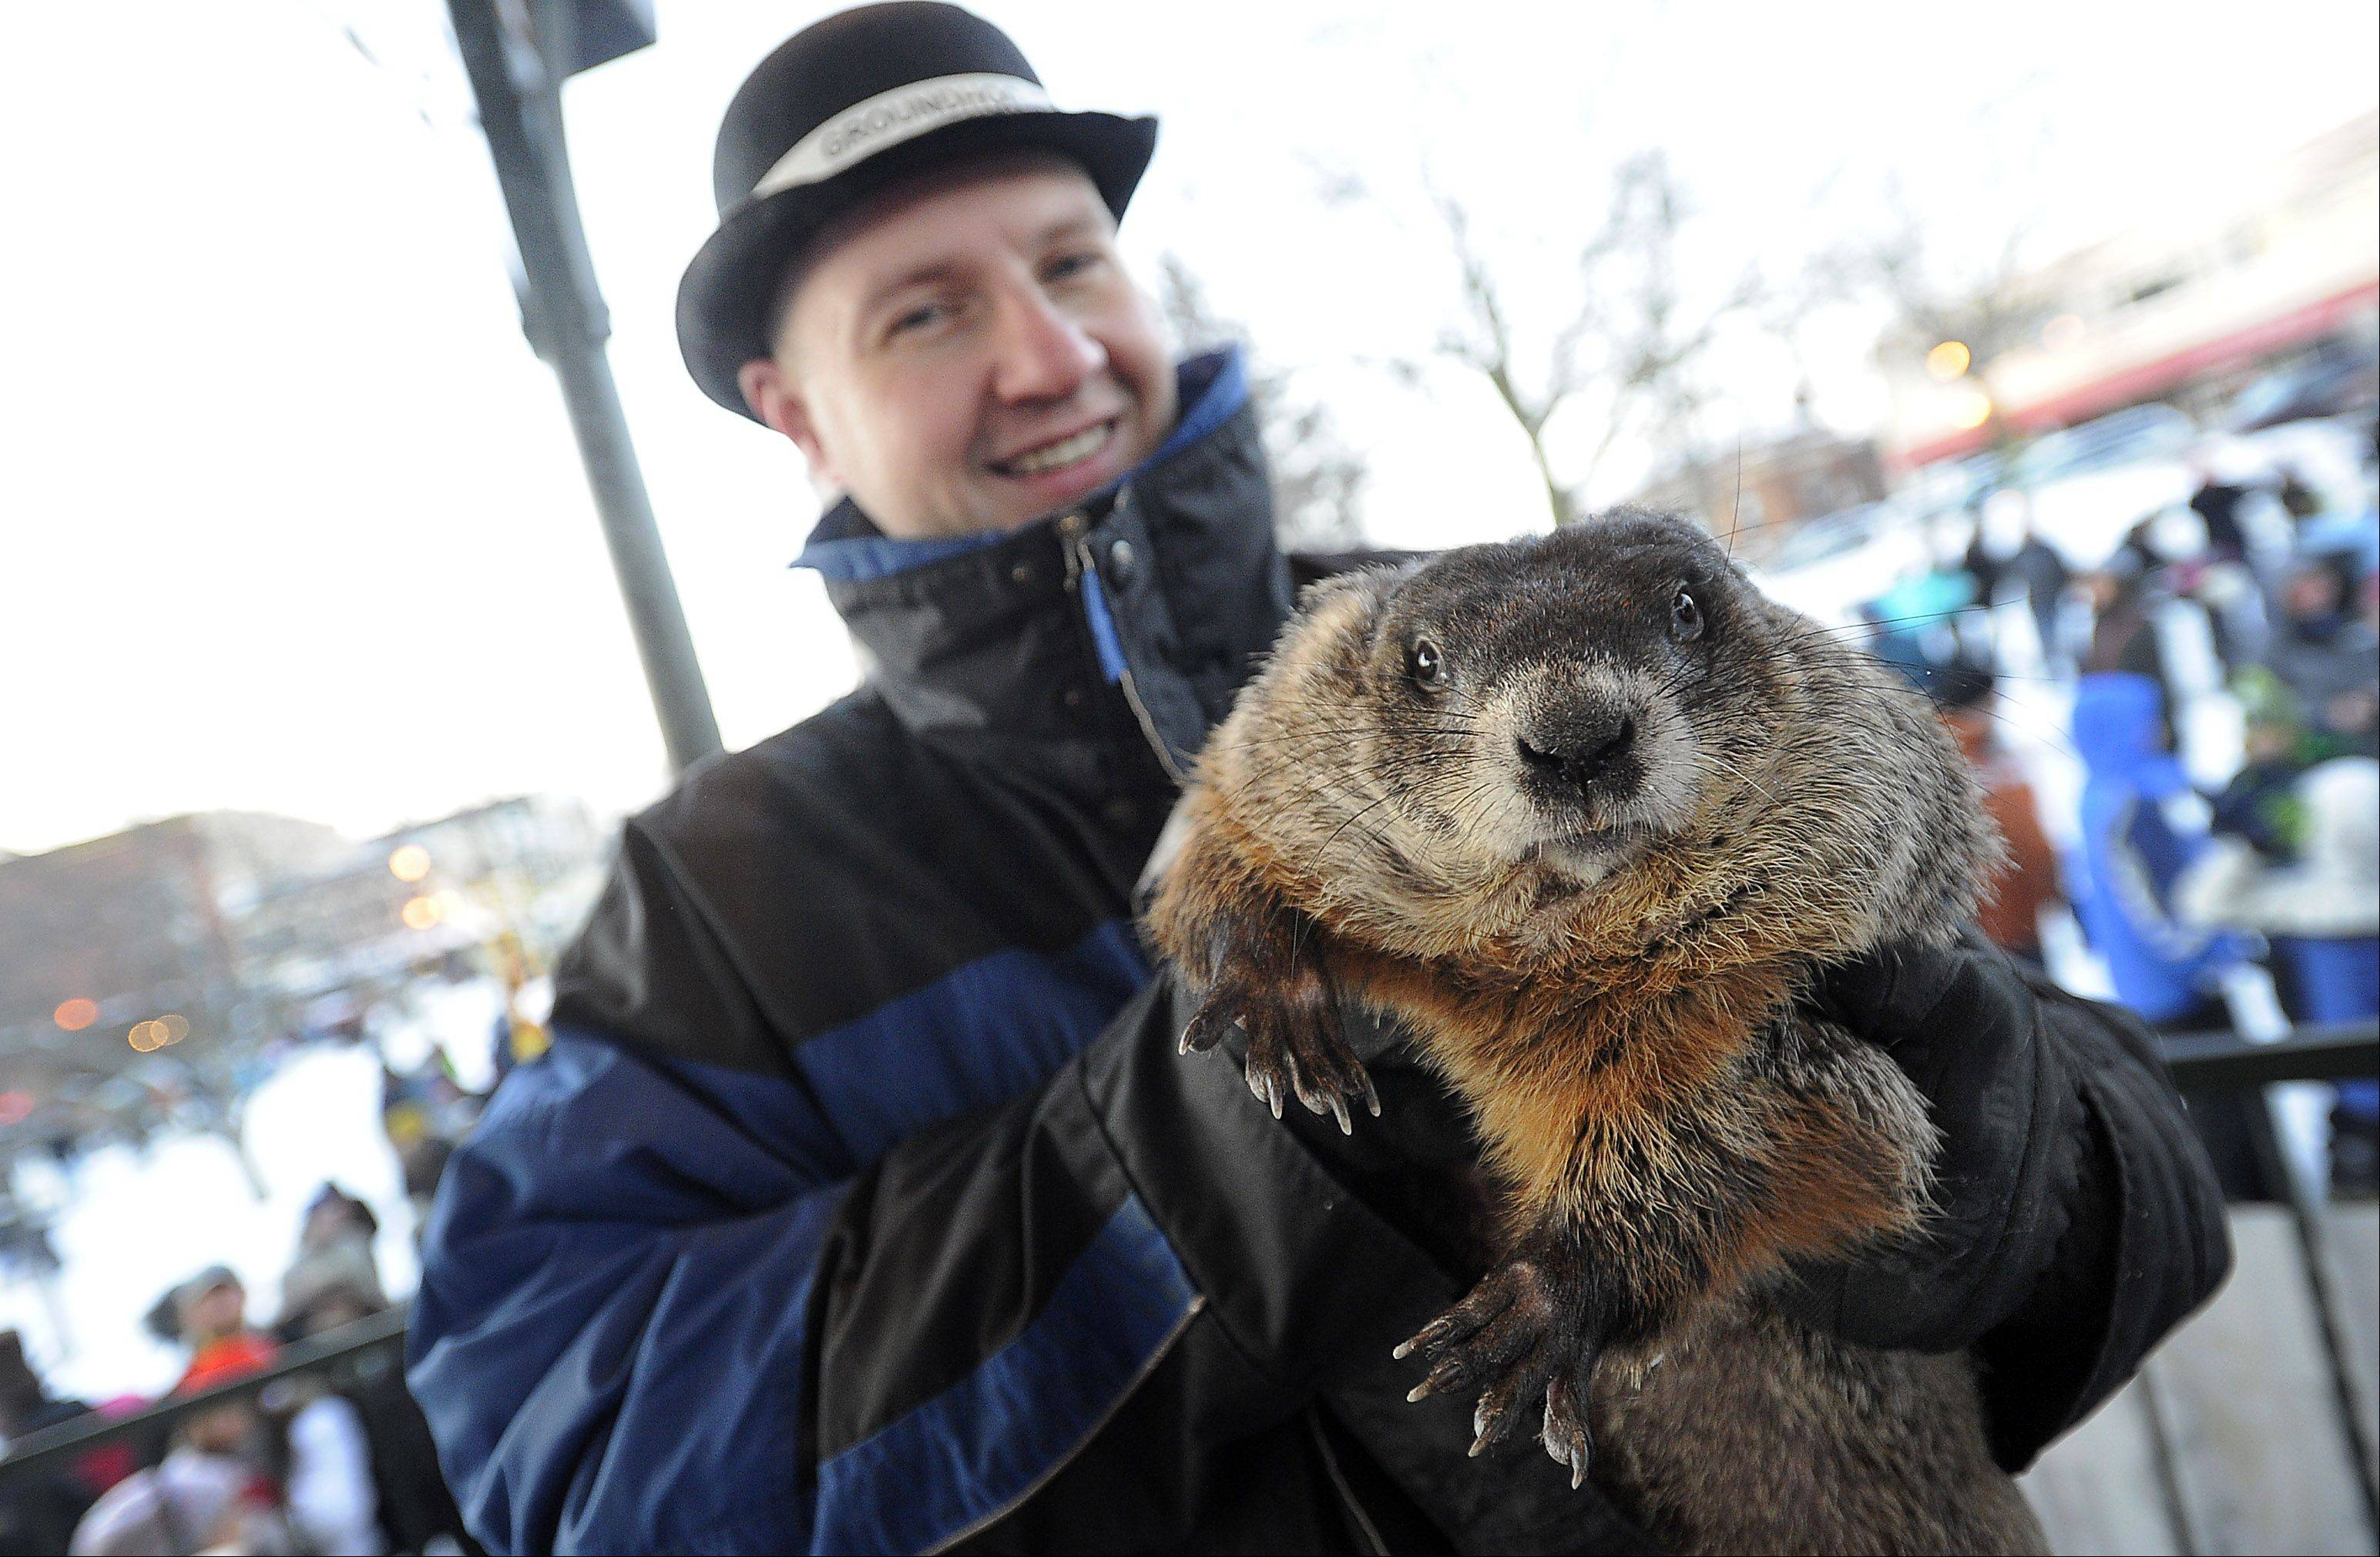 Woodstock Willie, being held up for the crowd on the Woodstock Square by animal wrangler Mark Szafran, gave a disappointing forecast Sunday morning. Willie saw his shadow, meaning six more weeks of winter.